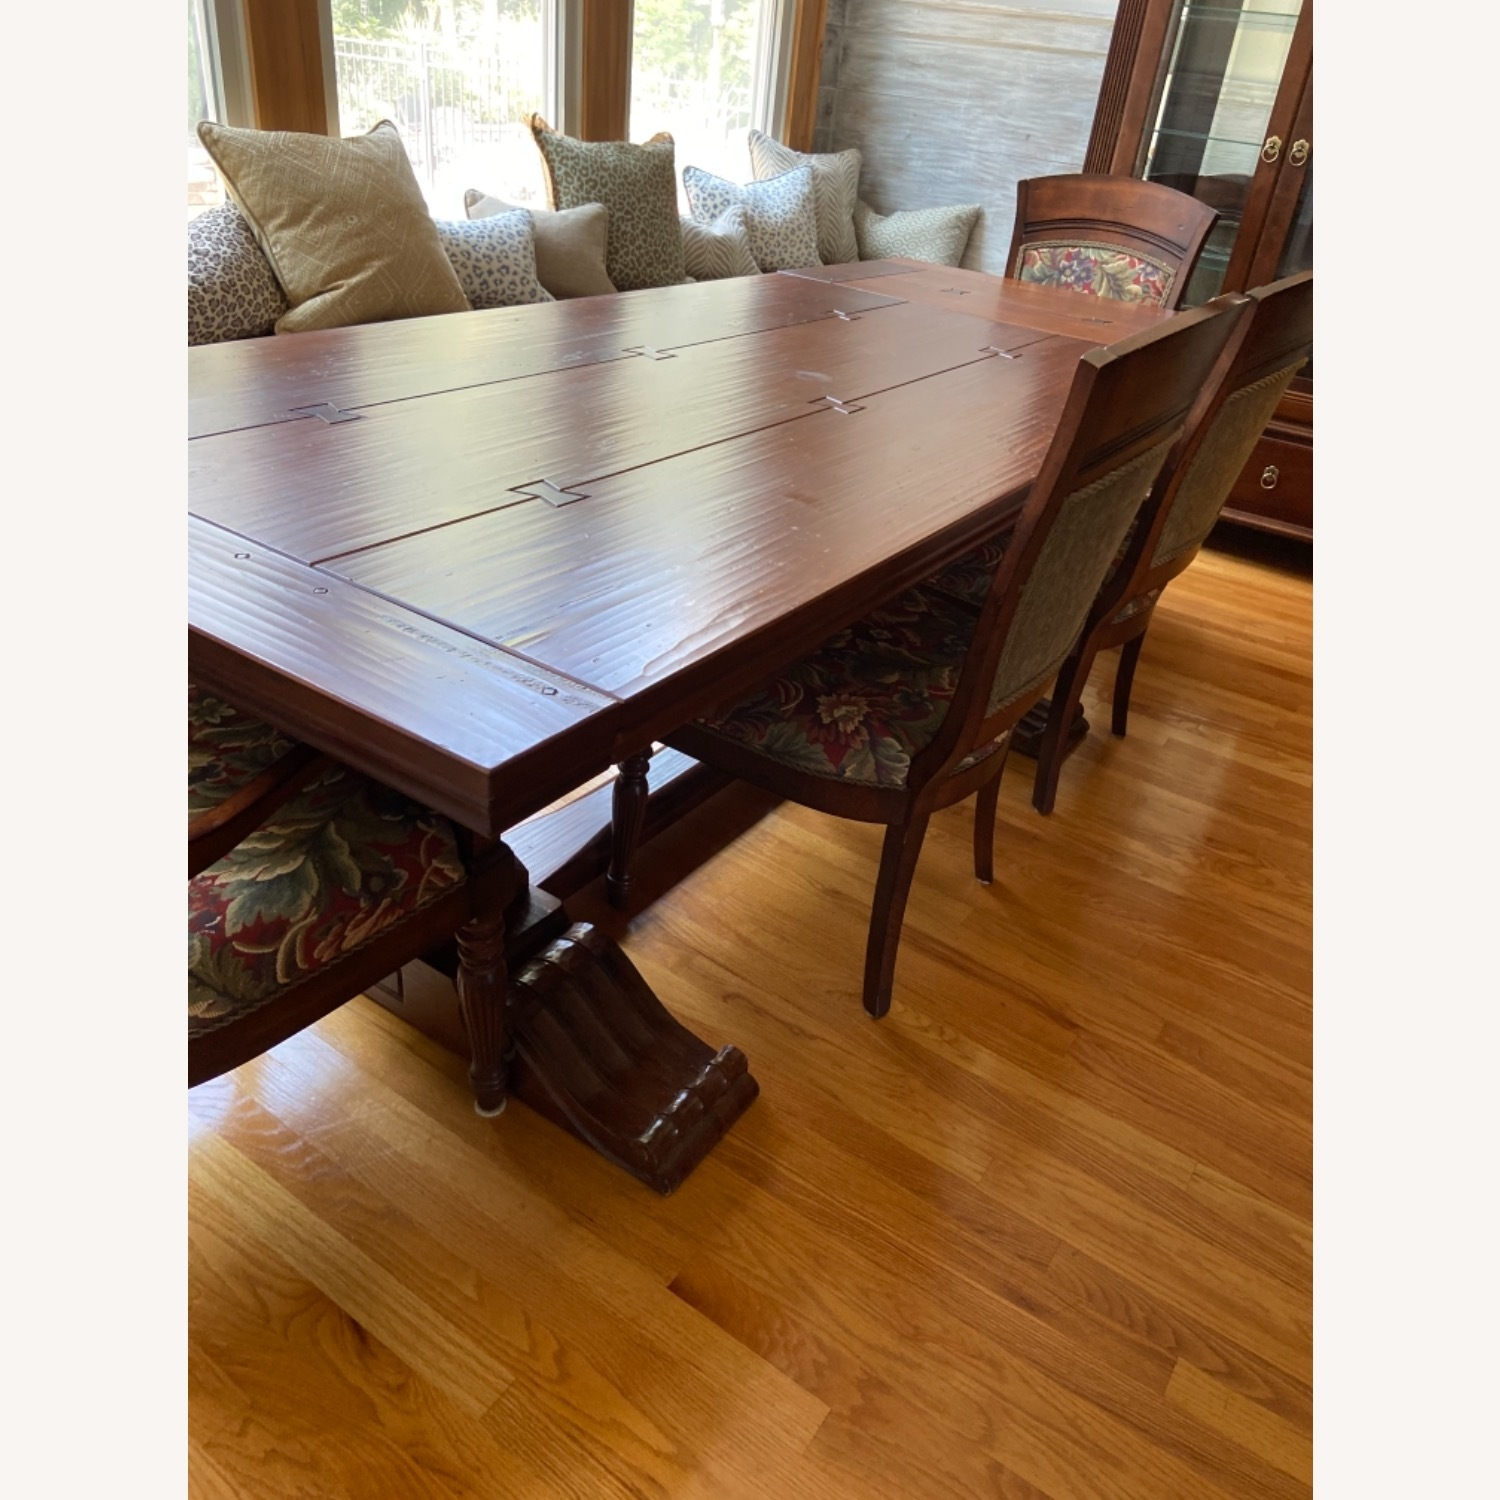 Ethan Allen Dining Table and Chairs - image-2